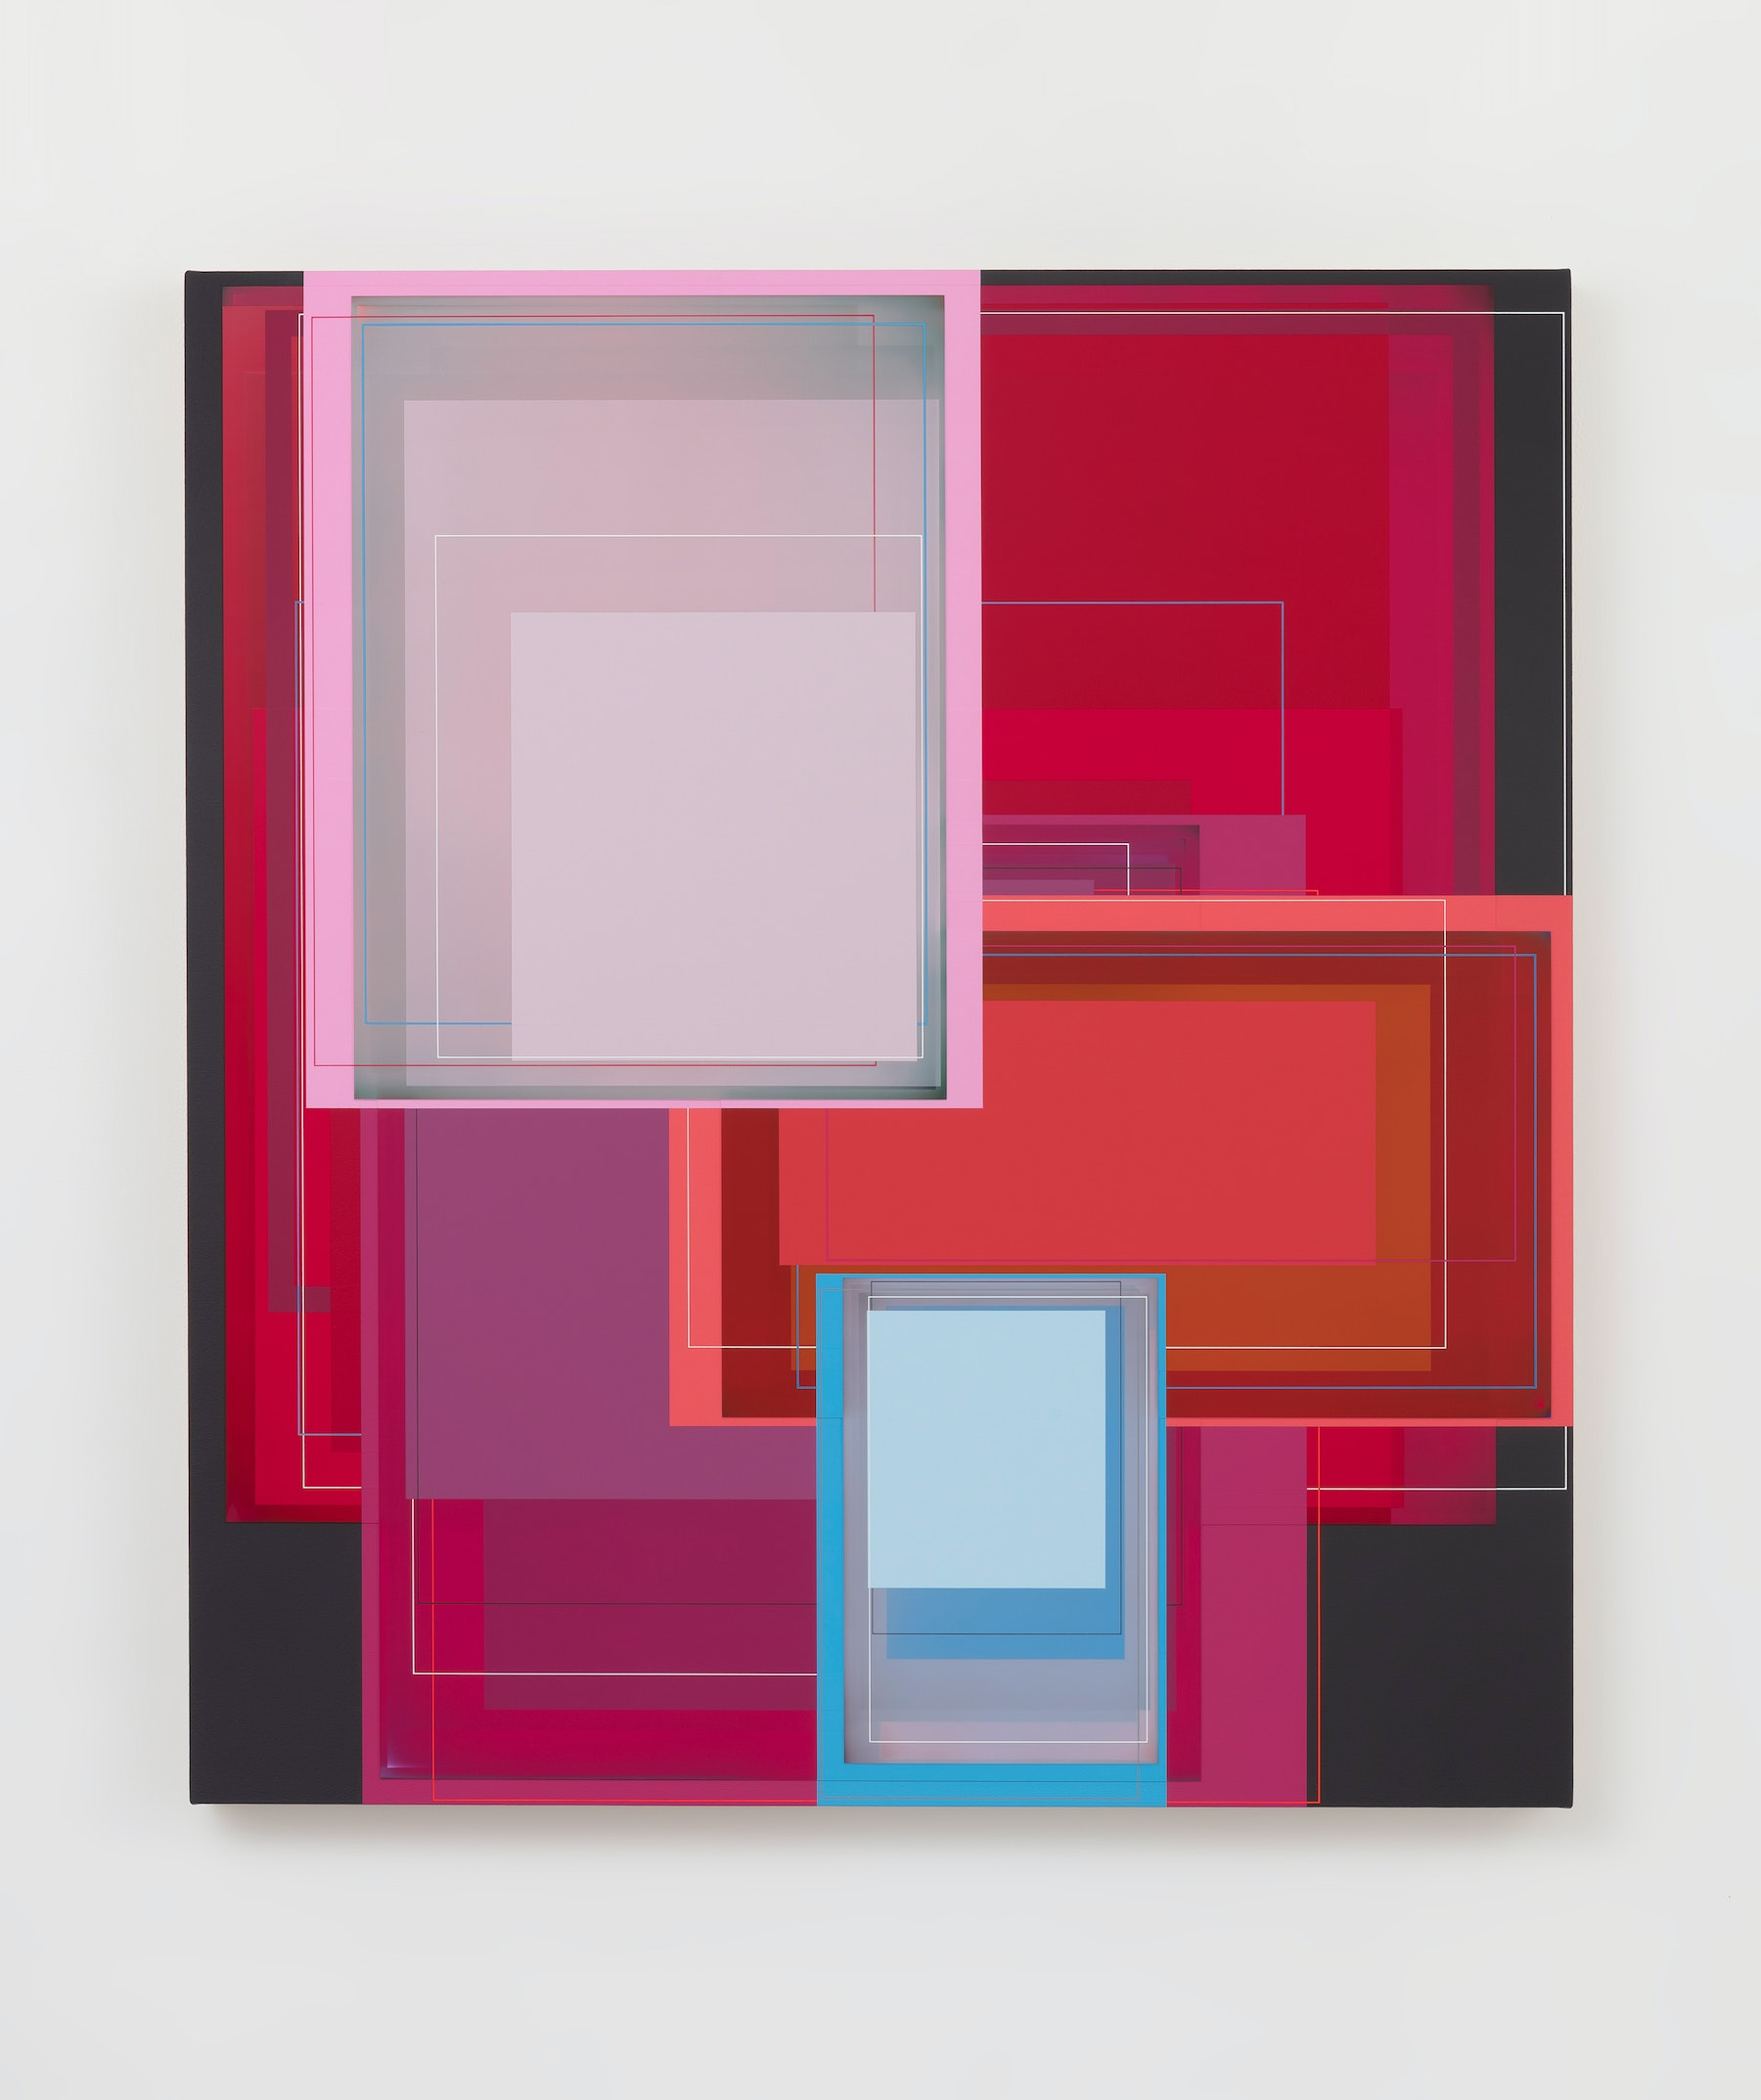 """Patrick Wilson """"Night Bloom,"""" 2020 Acrylic on canvas 41"""" x 37"""" [HxW] (104.14 x 93.98 cm) Inventory #WIL591 Courtesy of the artist and Vielmetter Los Angeles Photo credit: Robert Wedemeyer"""